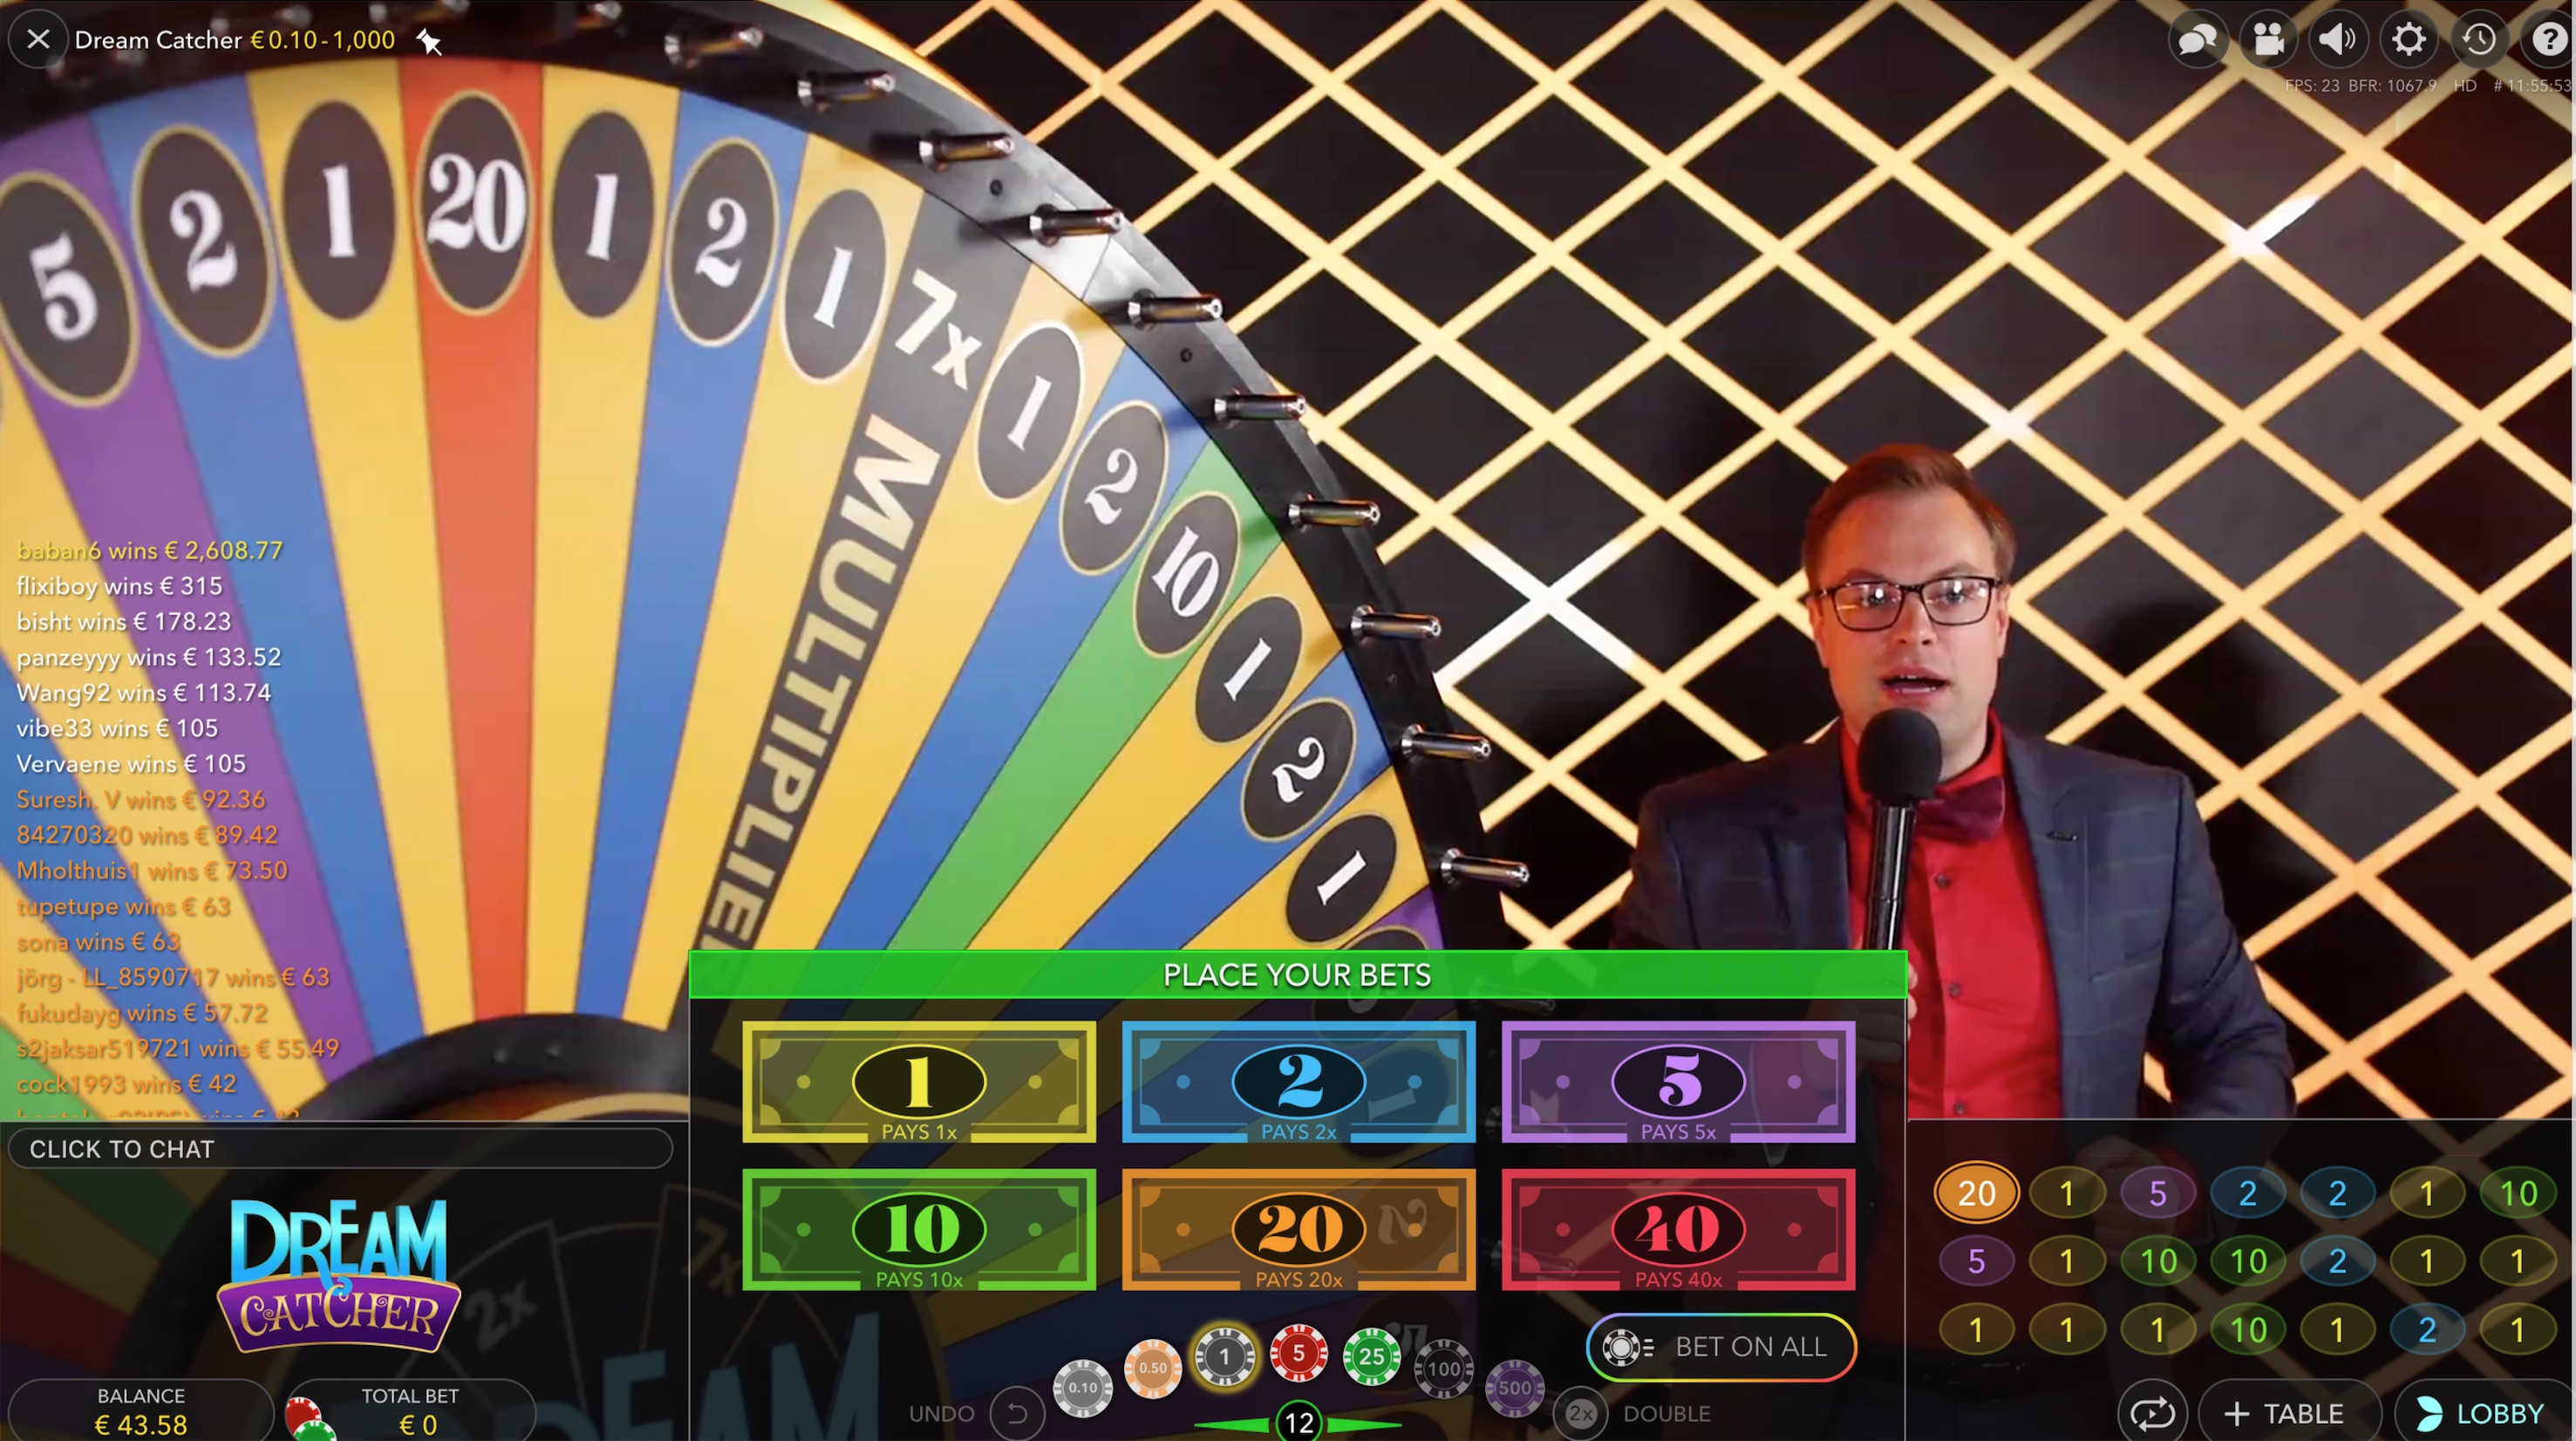 Dream Catcher strategy live casino game big wheel strategy